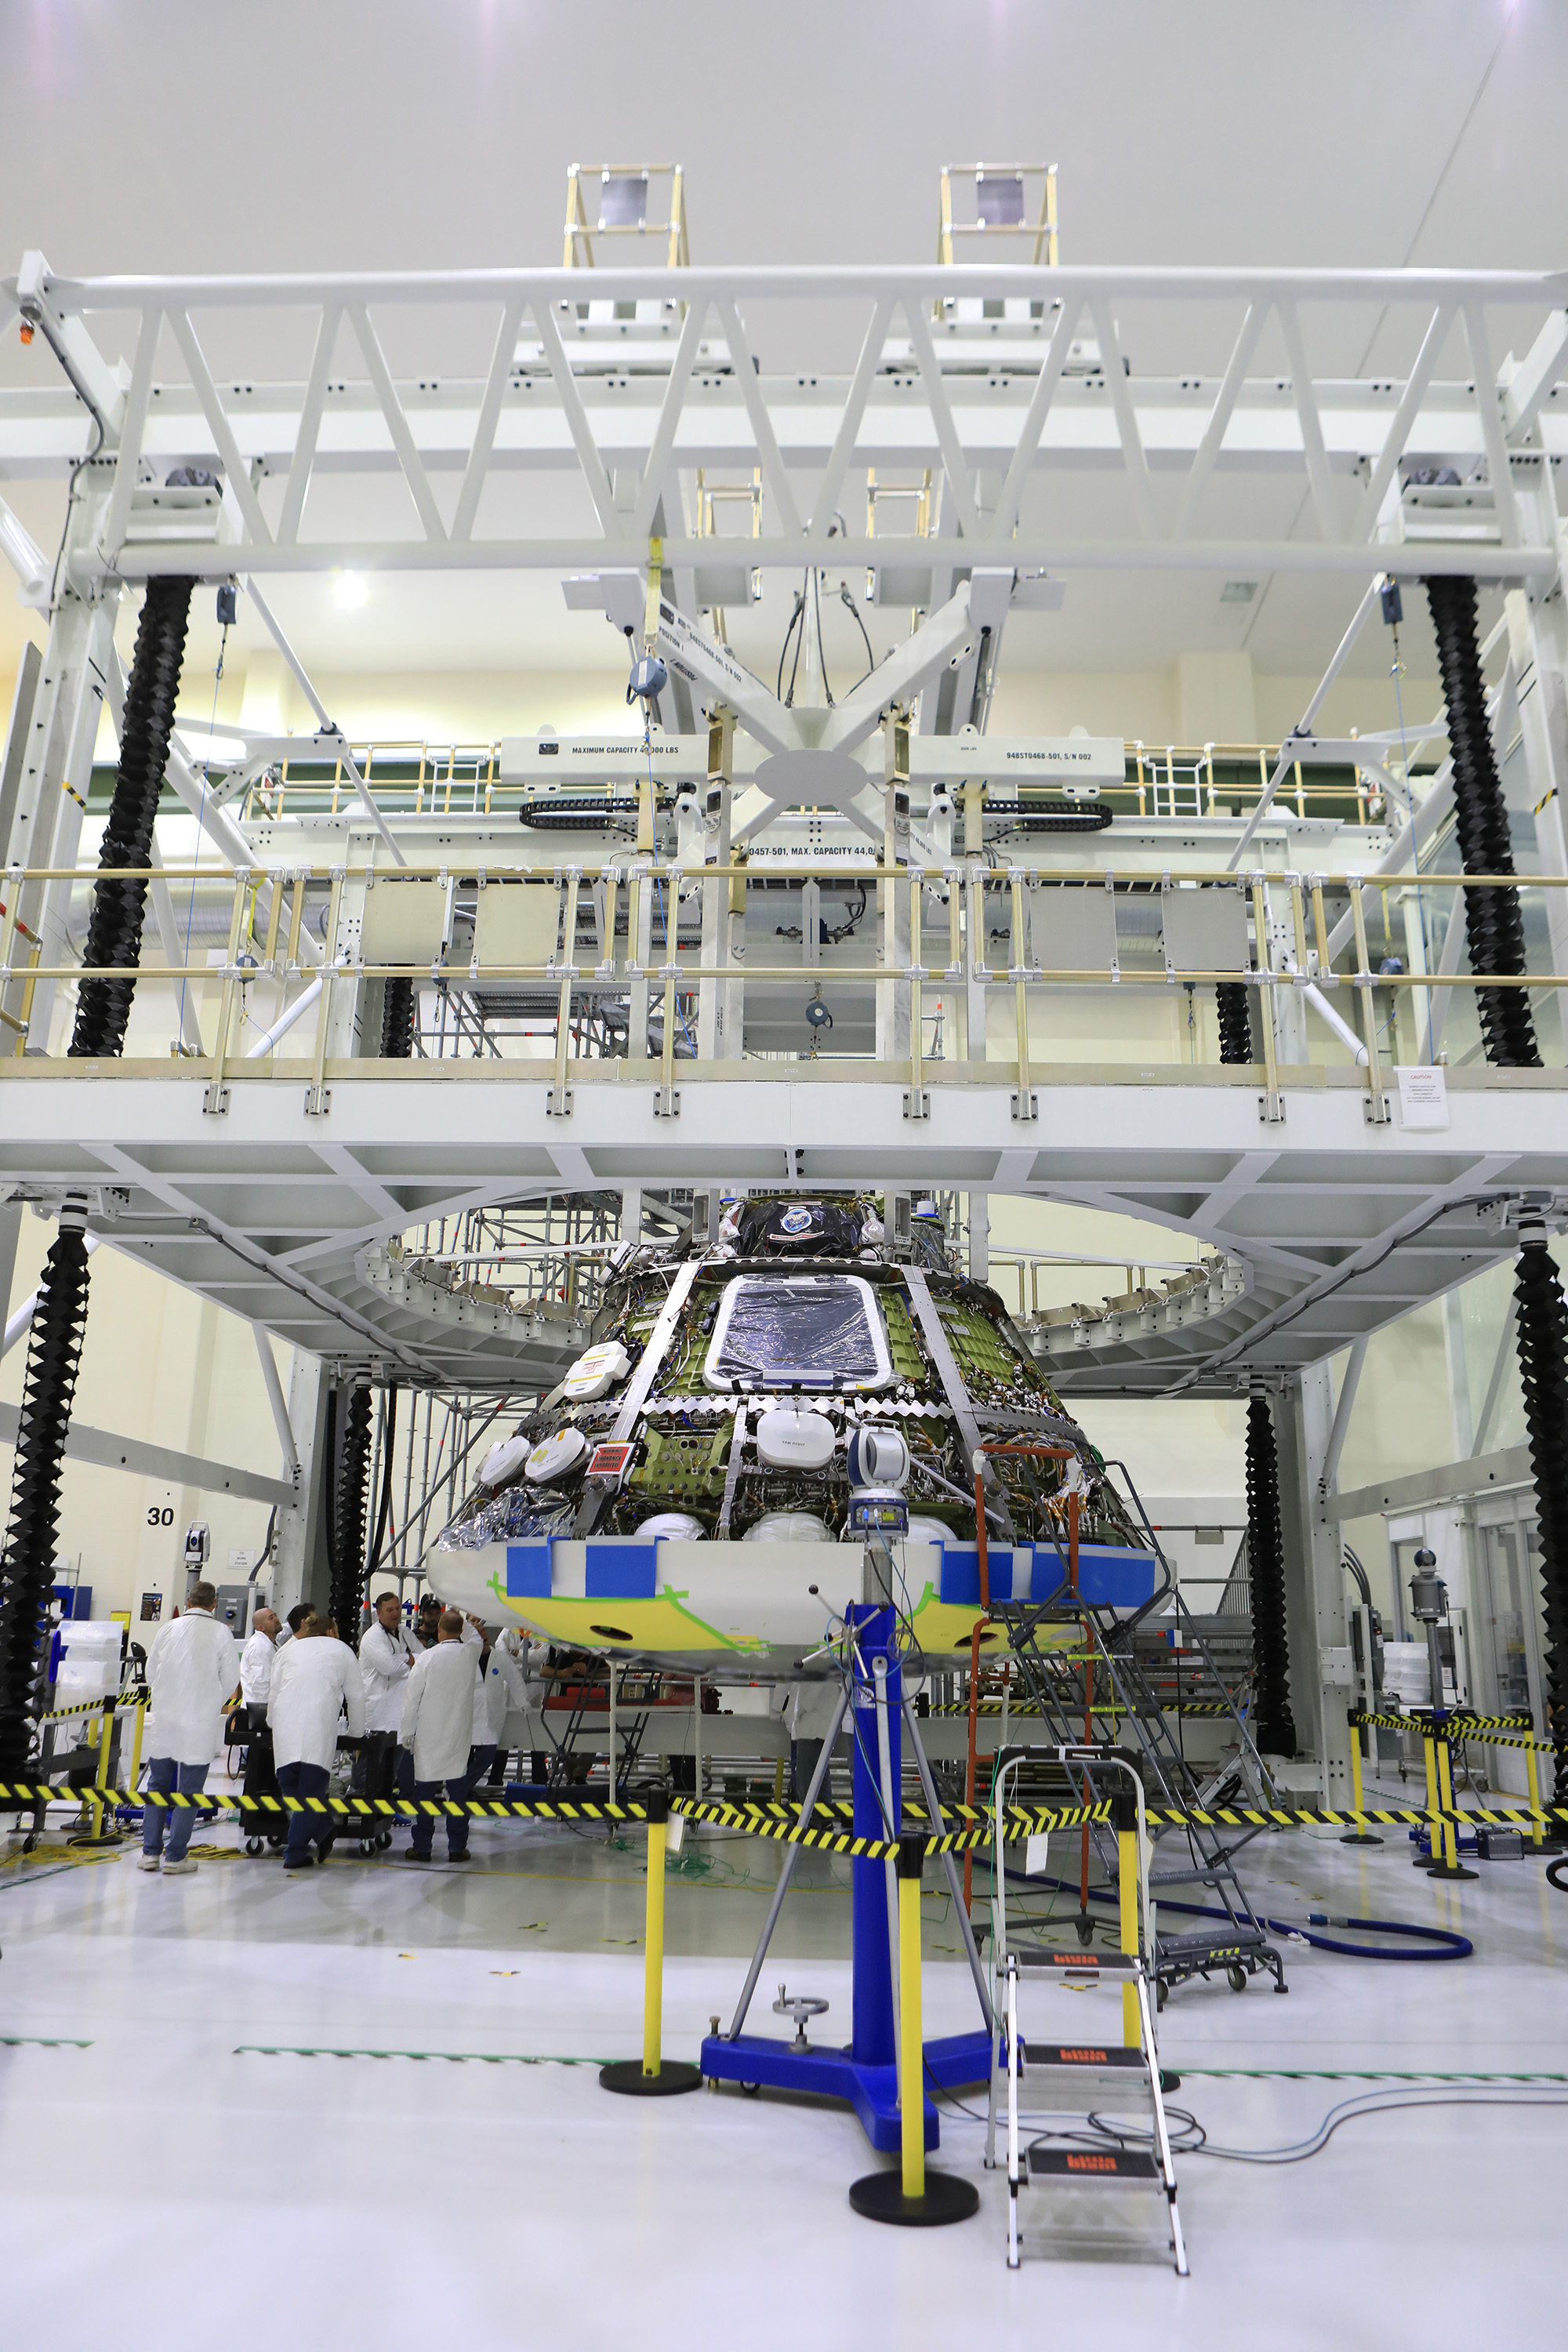 https://www.nasa.gov/sites/default/files/thumbnails/image/orion_heat_shield_workers.jpg